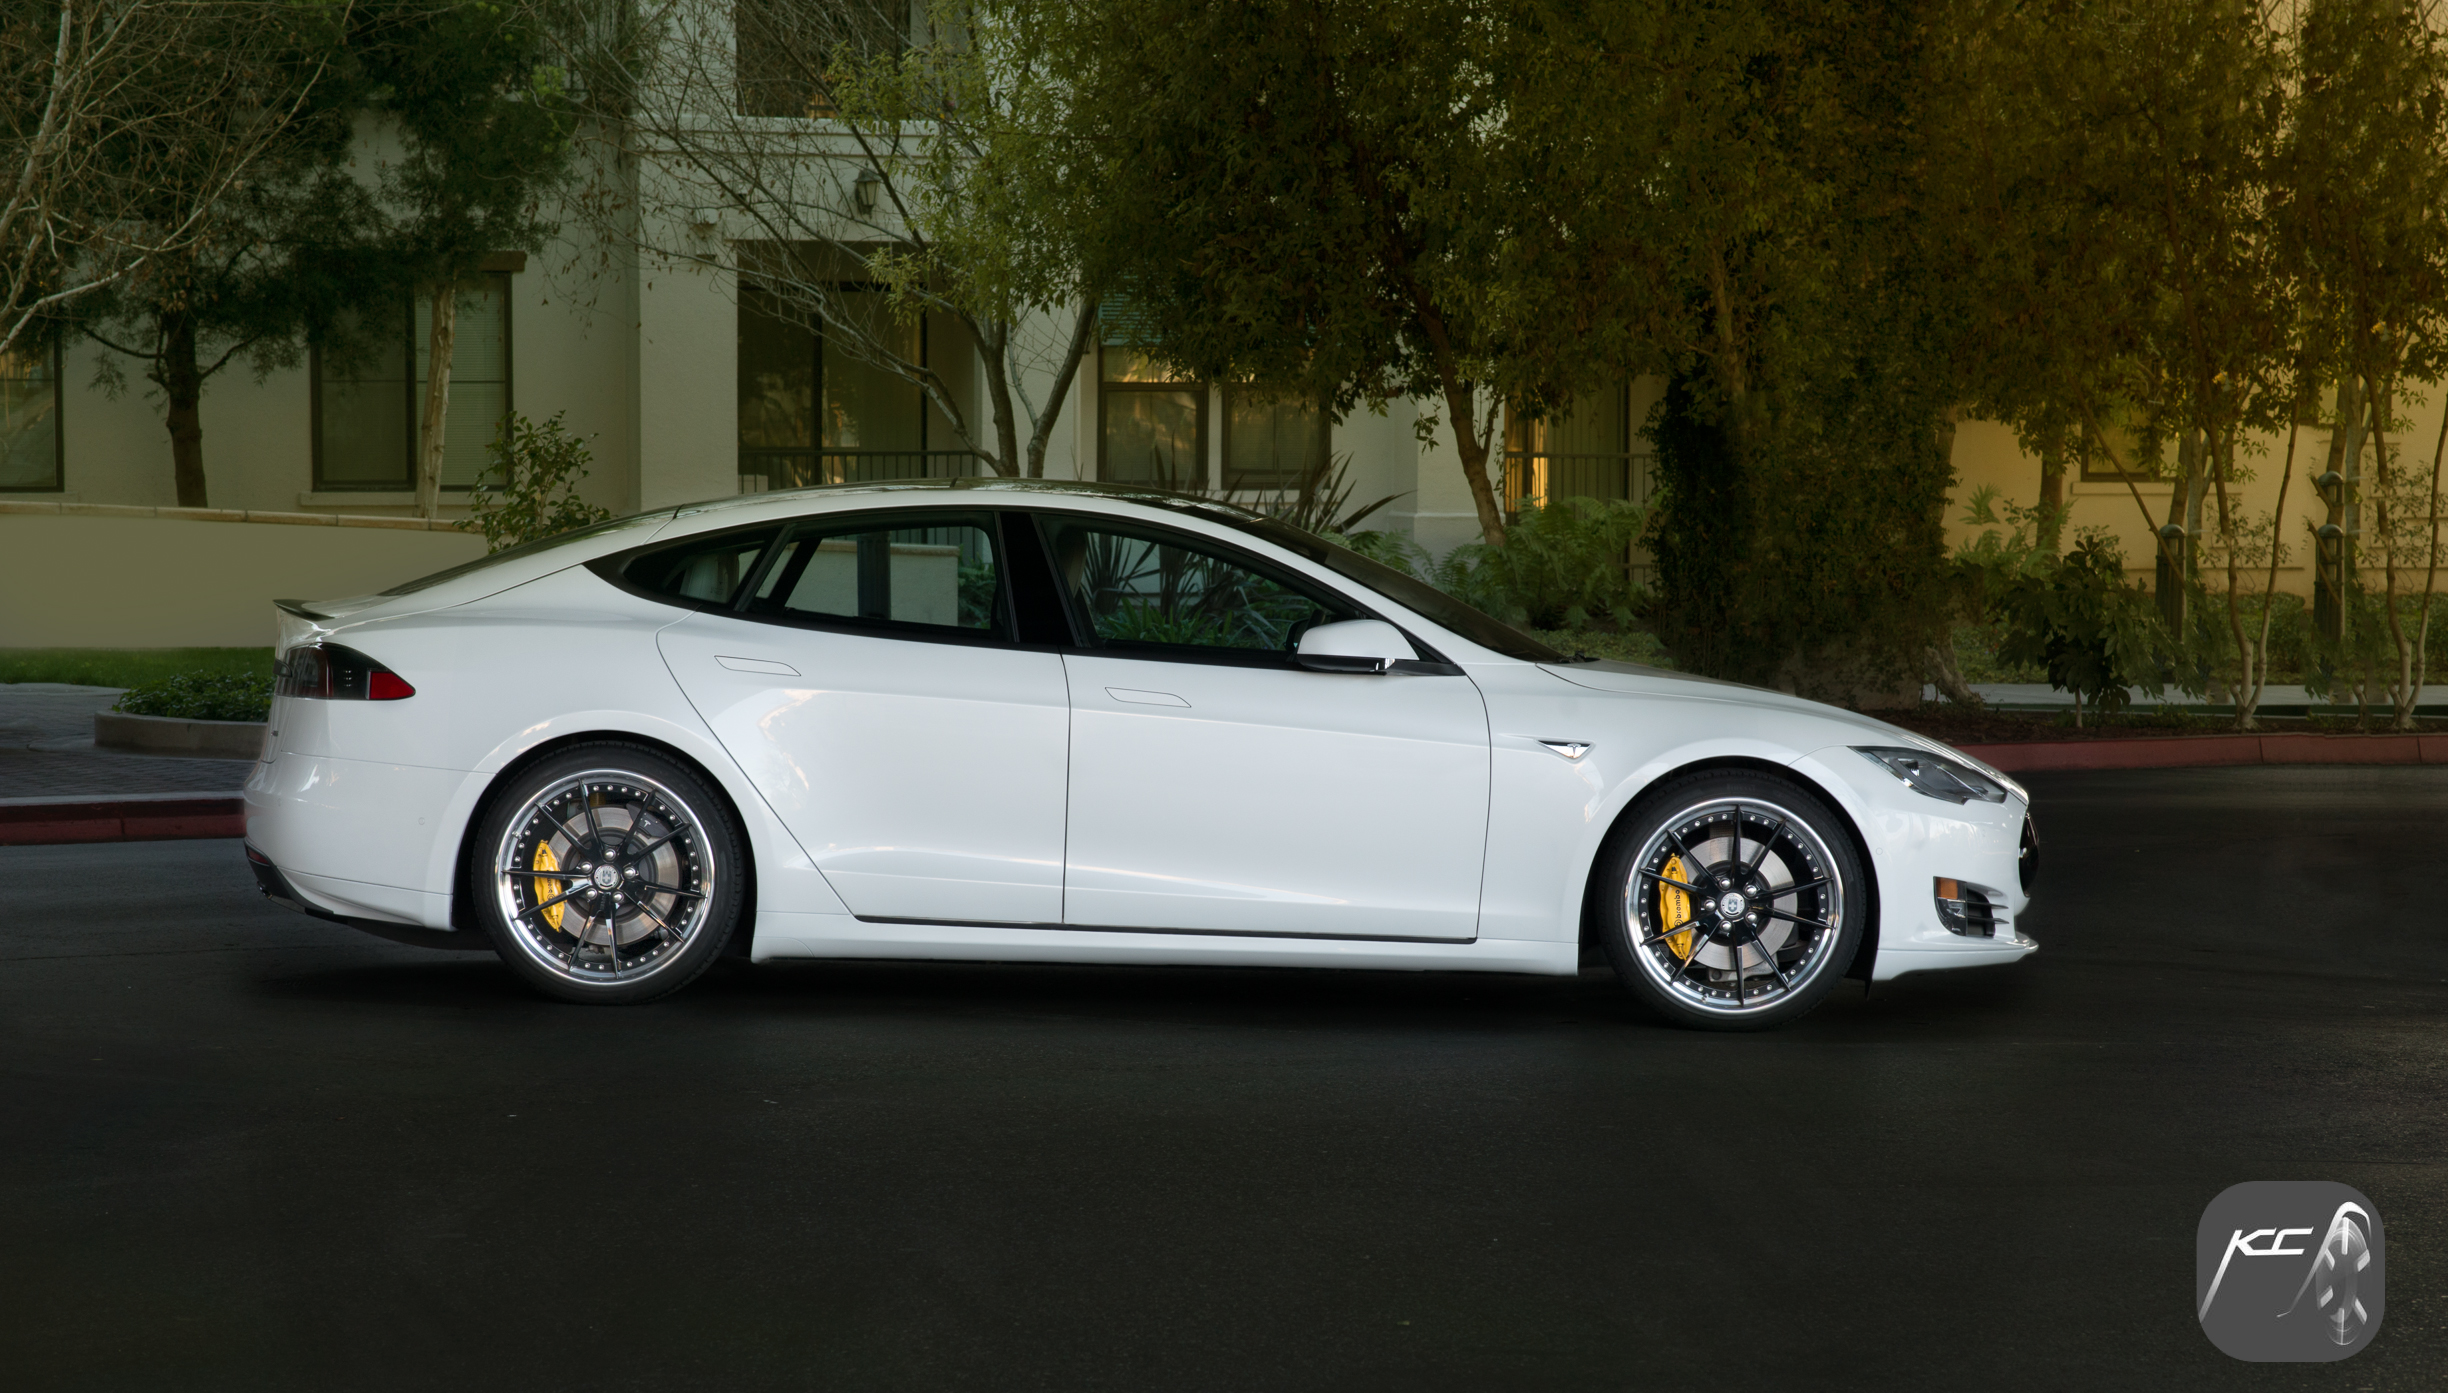 Tesla Model S P85 - Ben Revzin 2015 for Koncept Cars.jpg